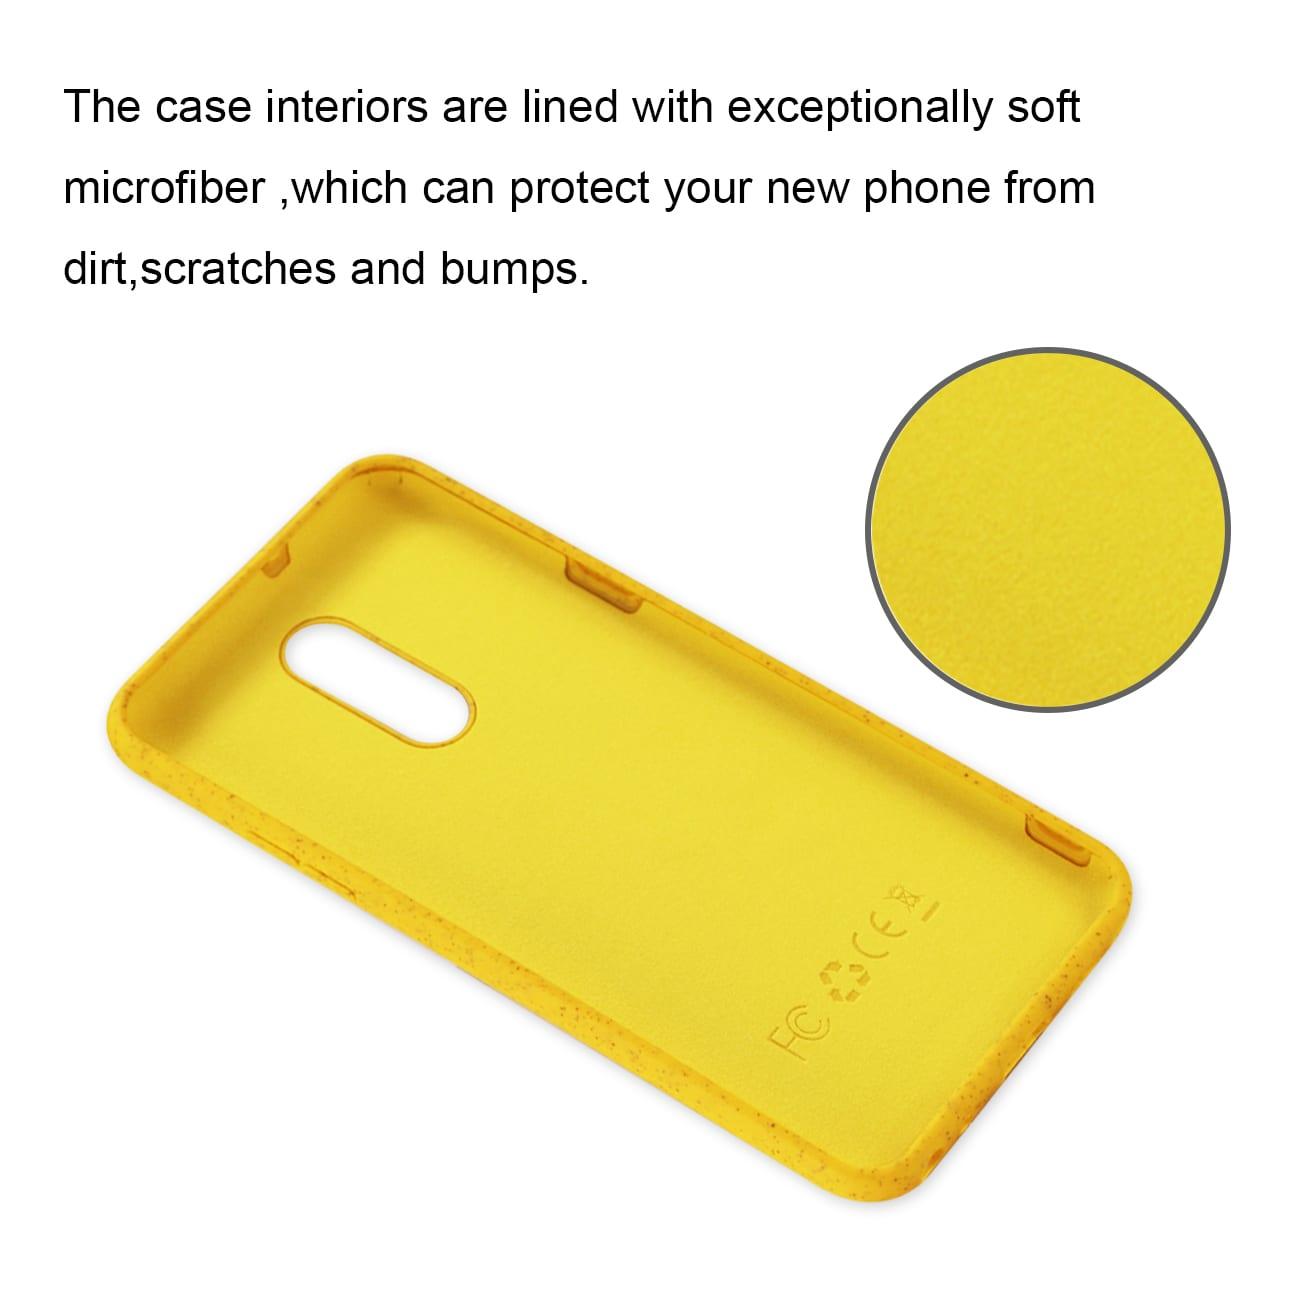 ISTIK LG STYLO 5 Wheat Bran Material Silicone Phone Case In Yellow